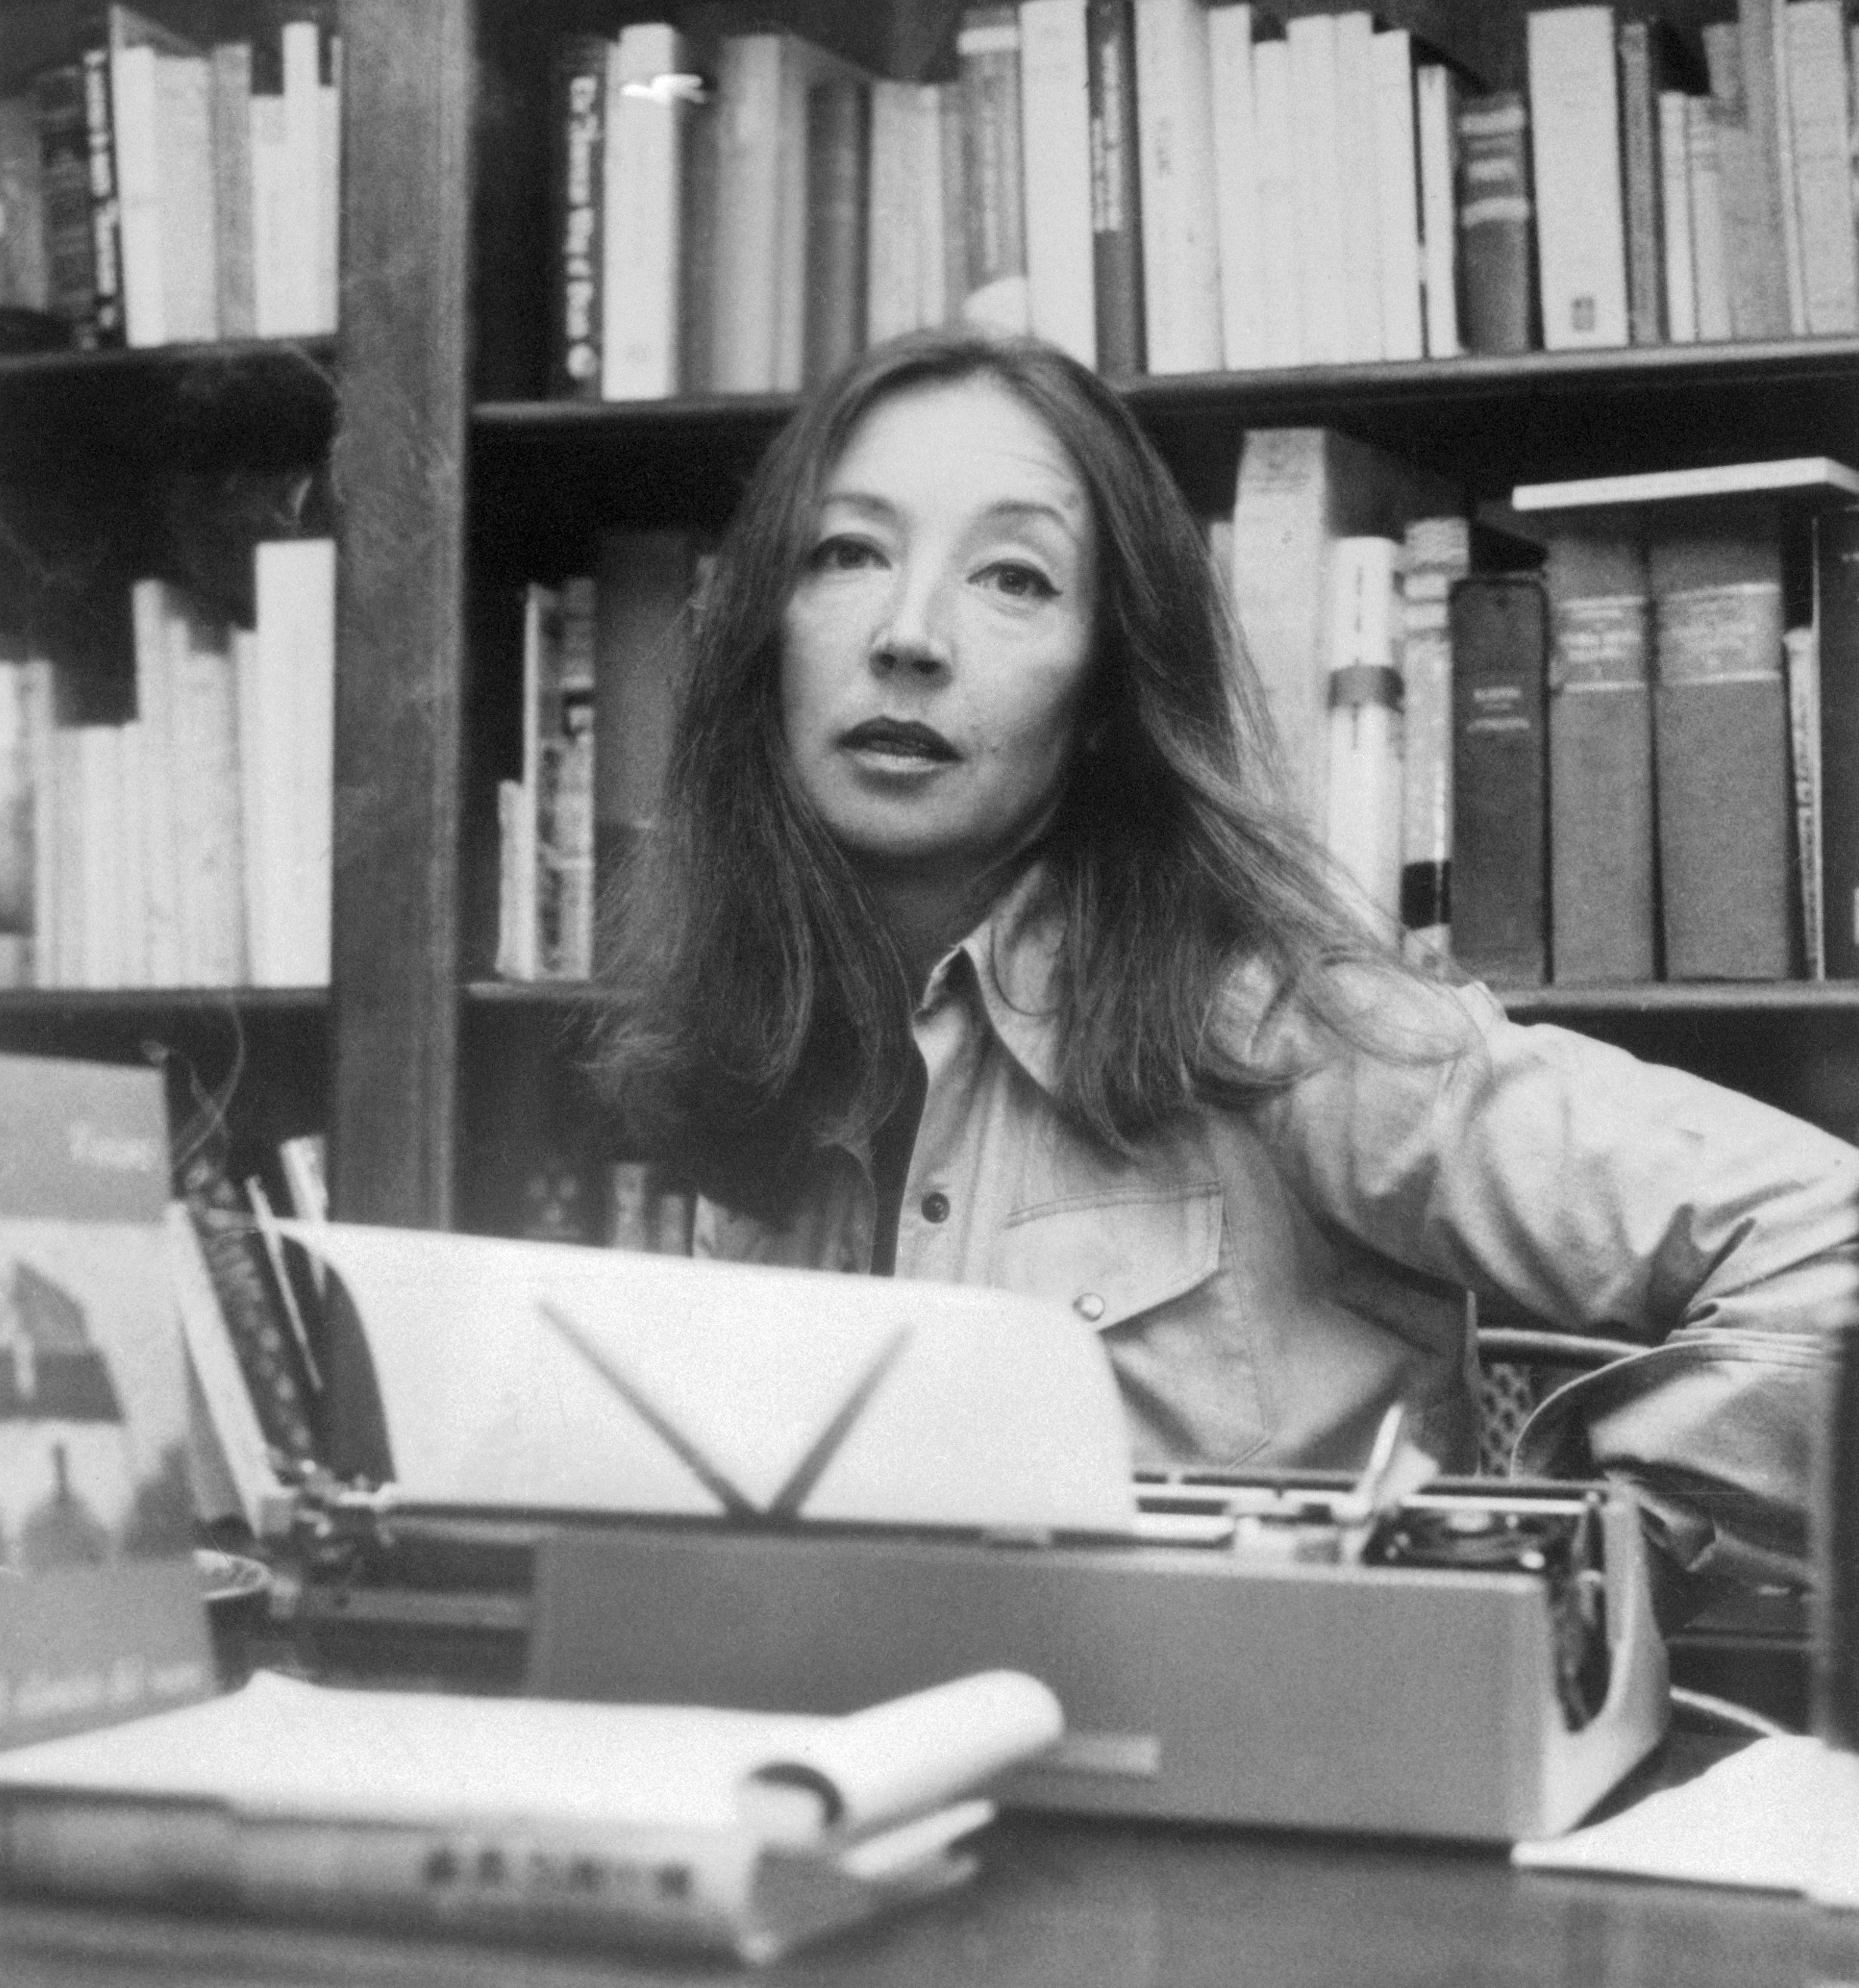 The Tuscans who made history: Oriana Fallaci